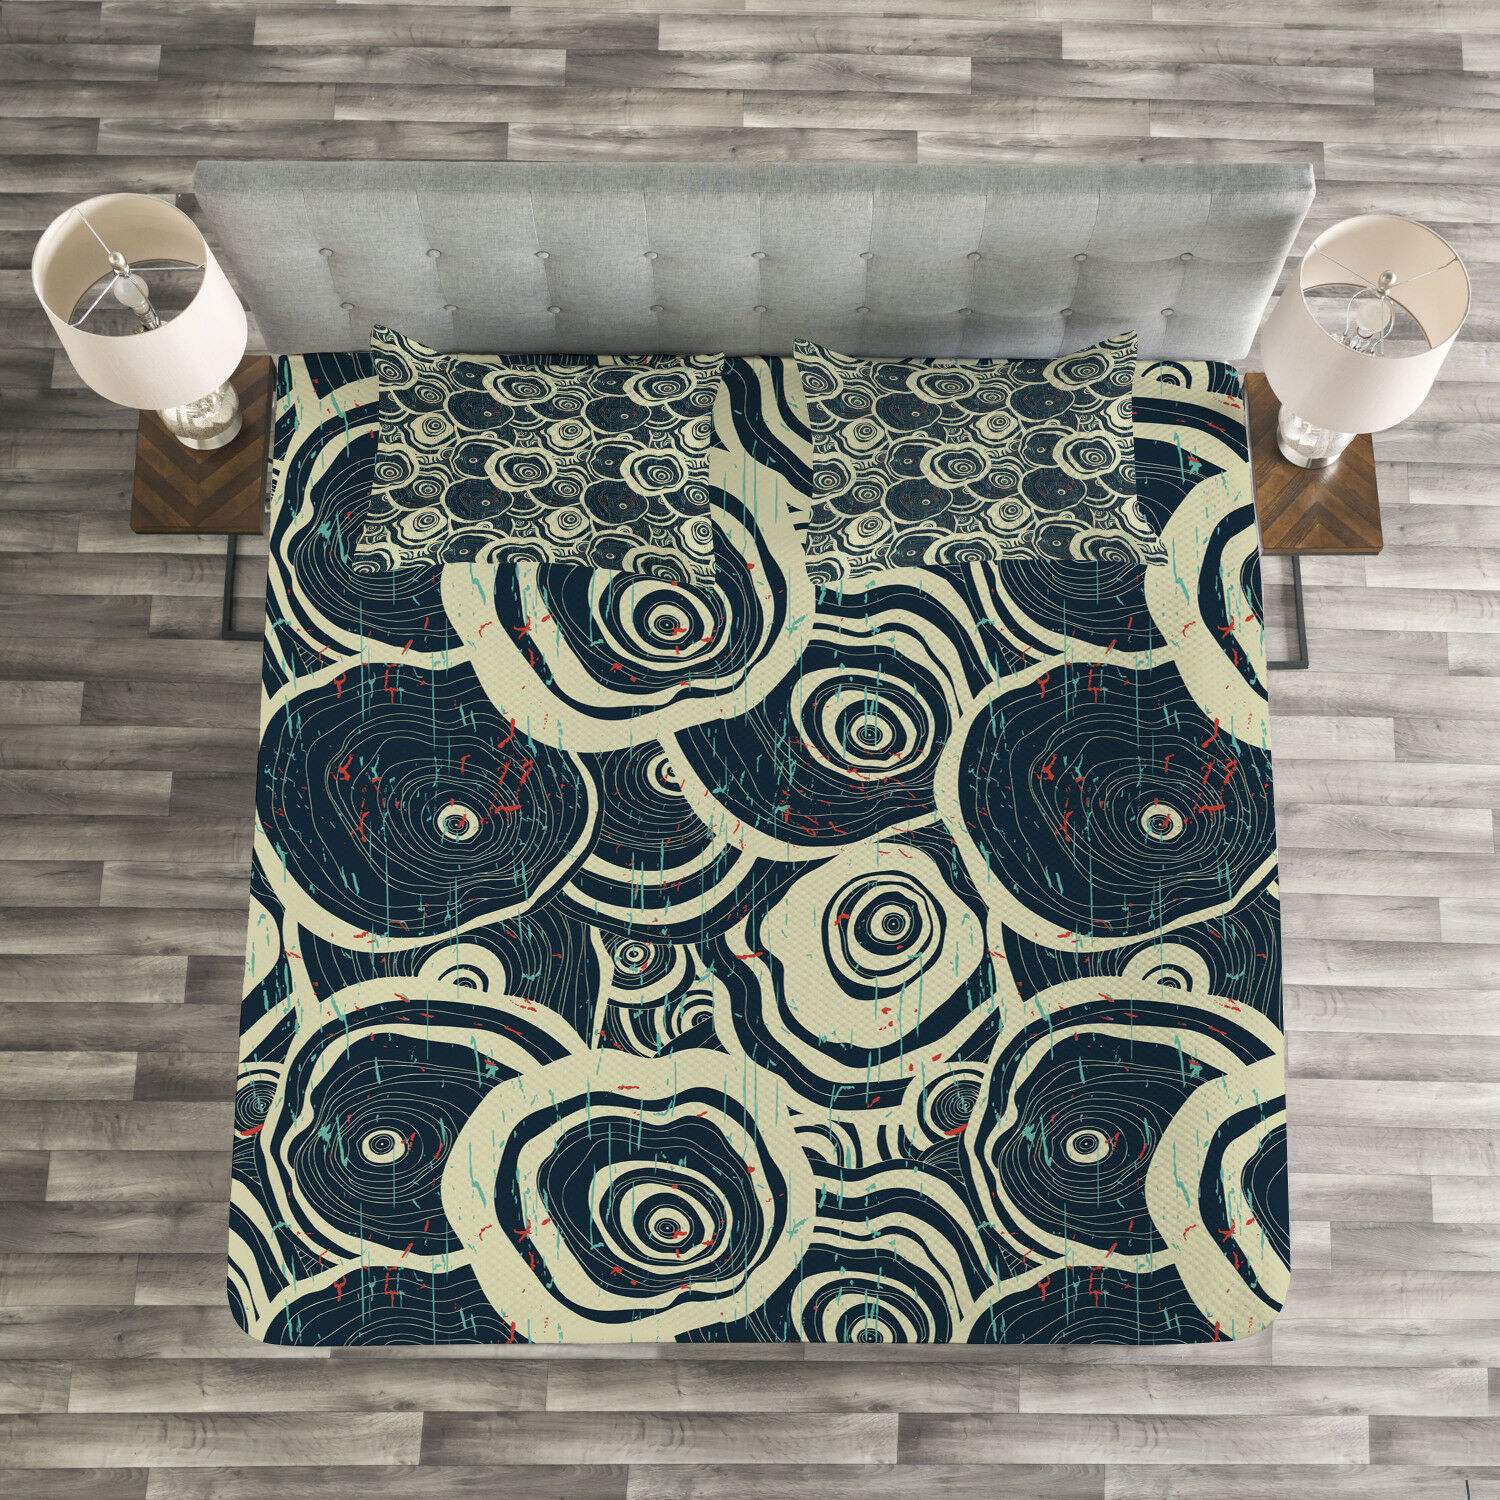 Grunge Quilted Bedspread & Pillow Shams Set, Circles of the Tree Print